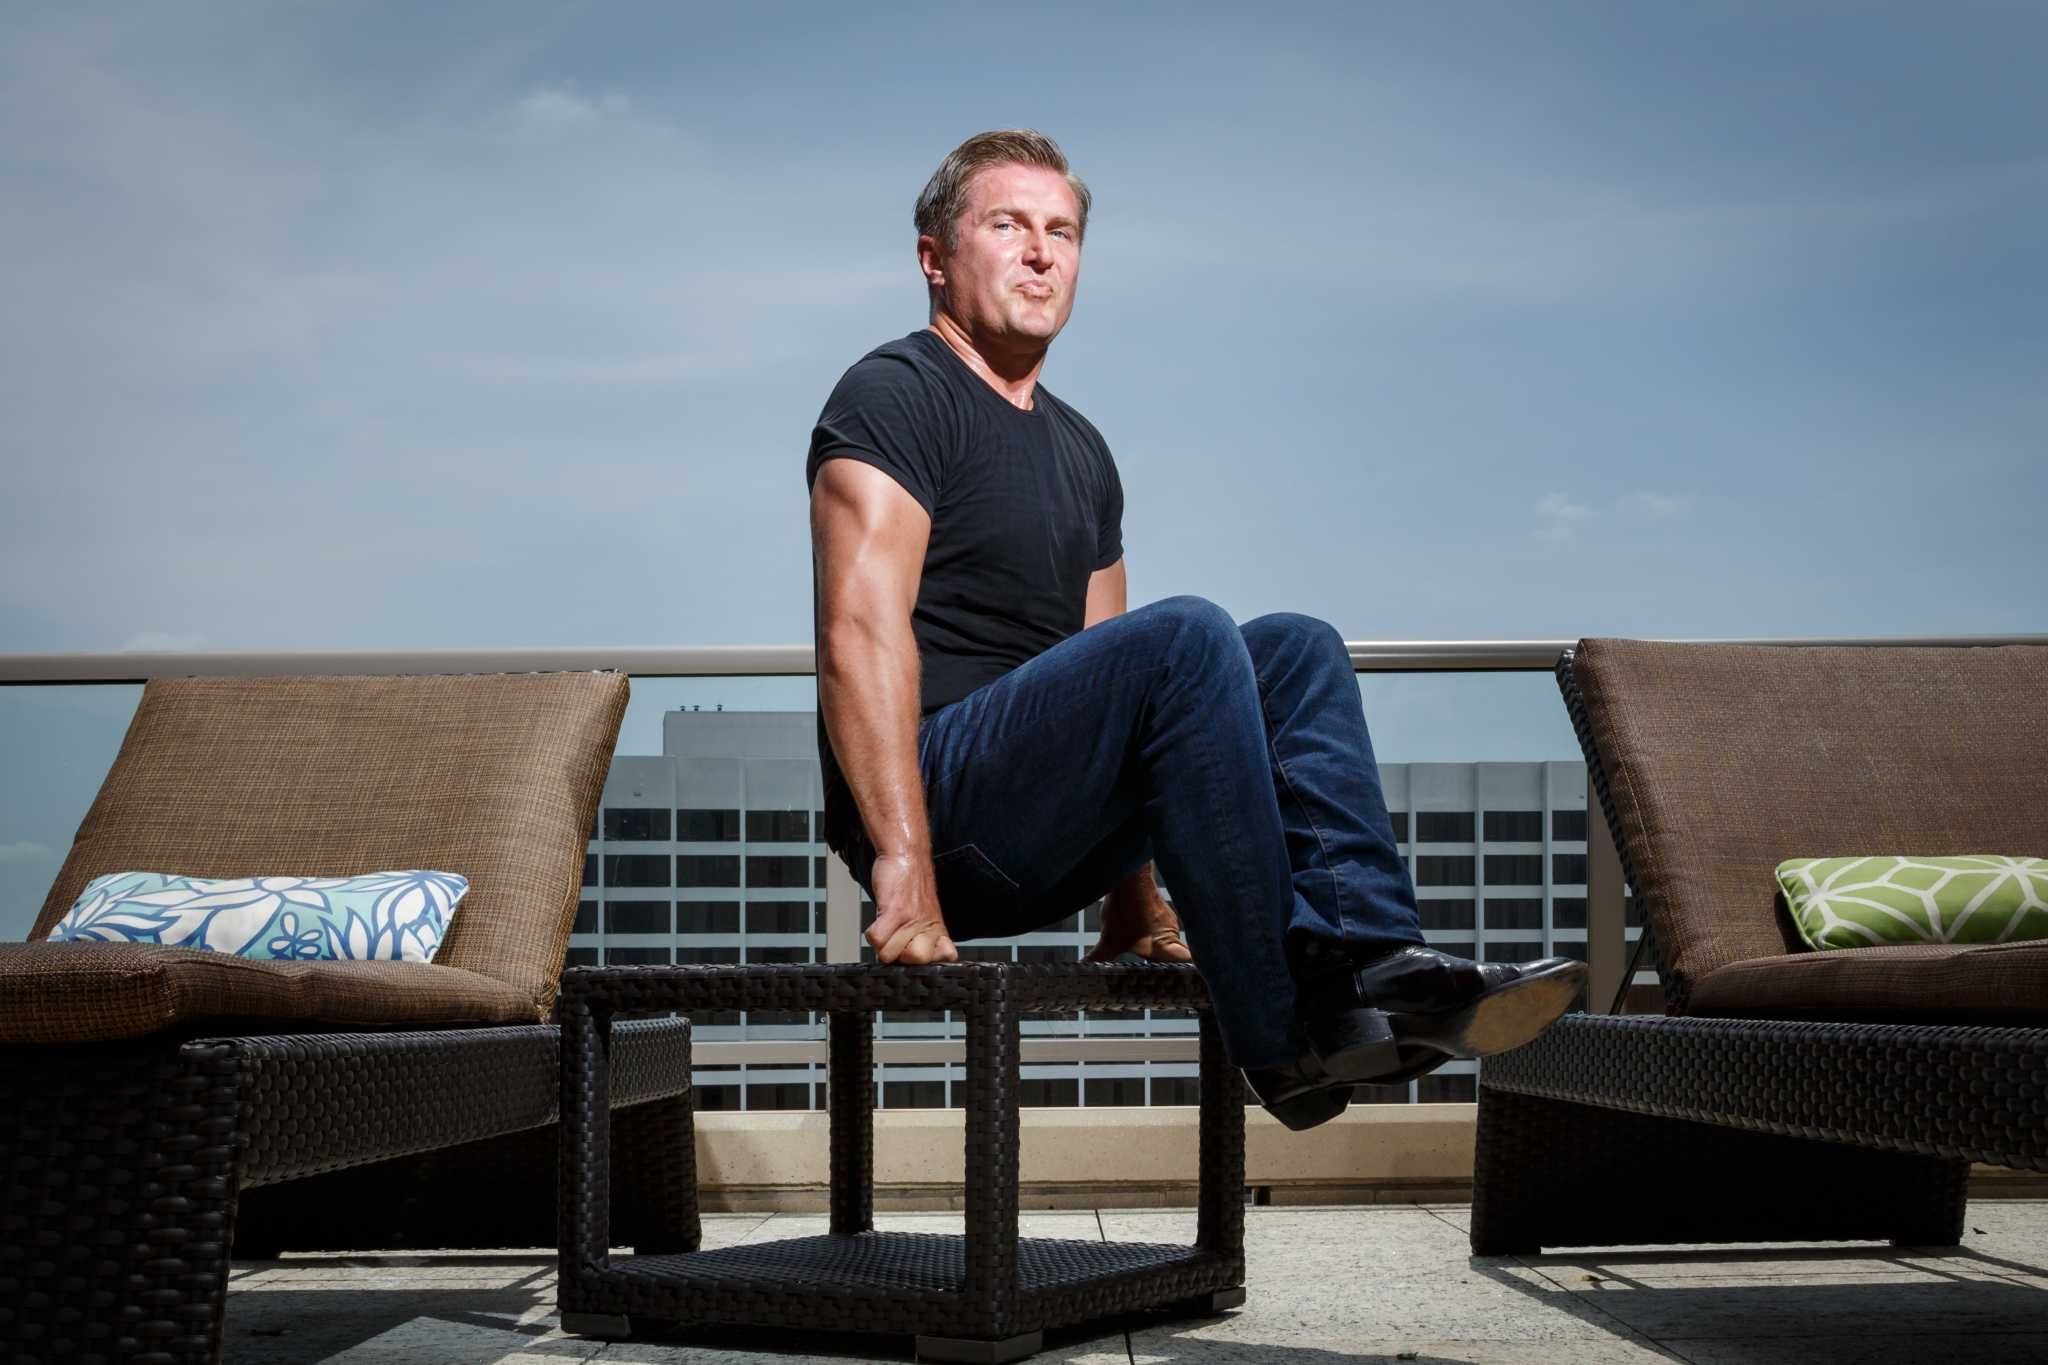 Houston's own Arnold Schwarzenegger? City's new 'fitness guru' is here to pump you up